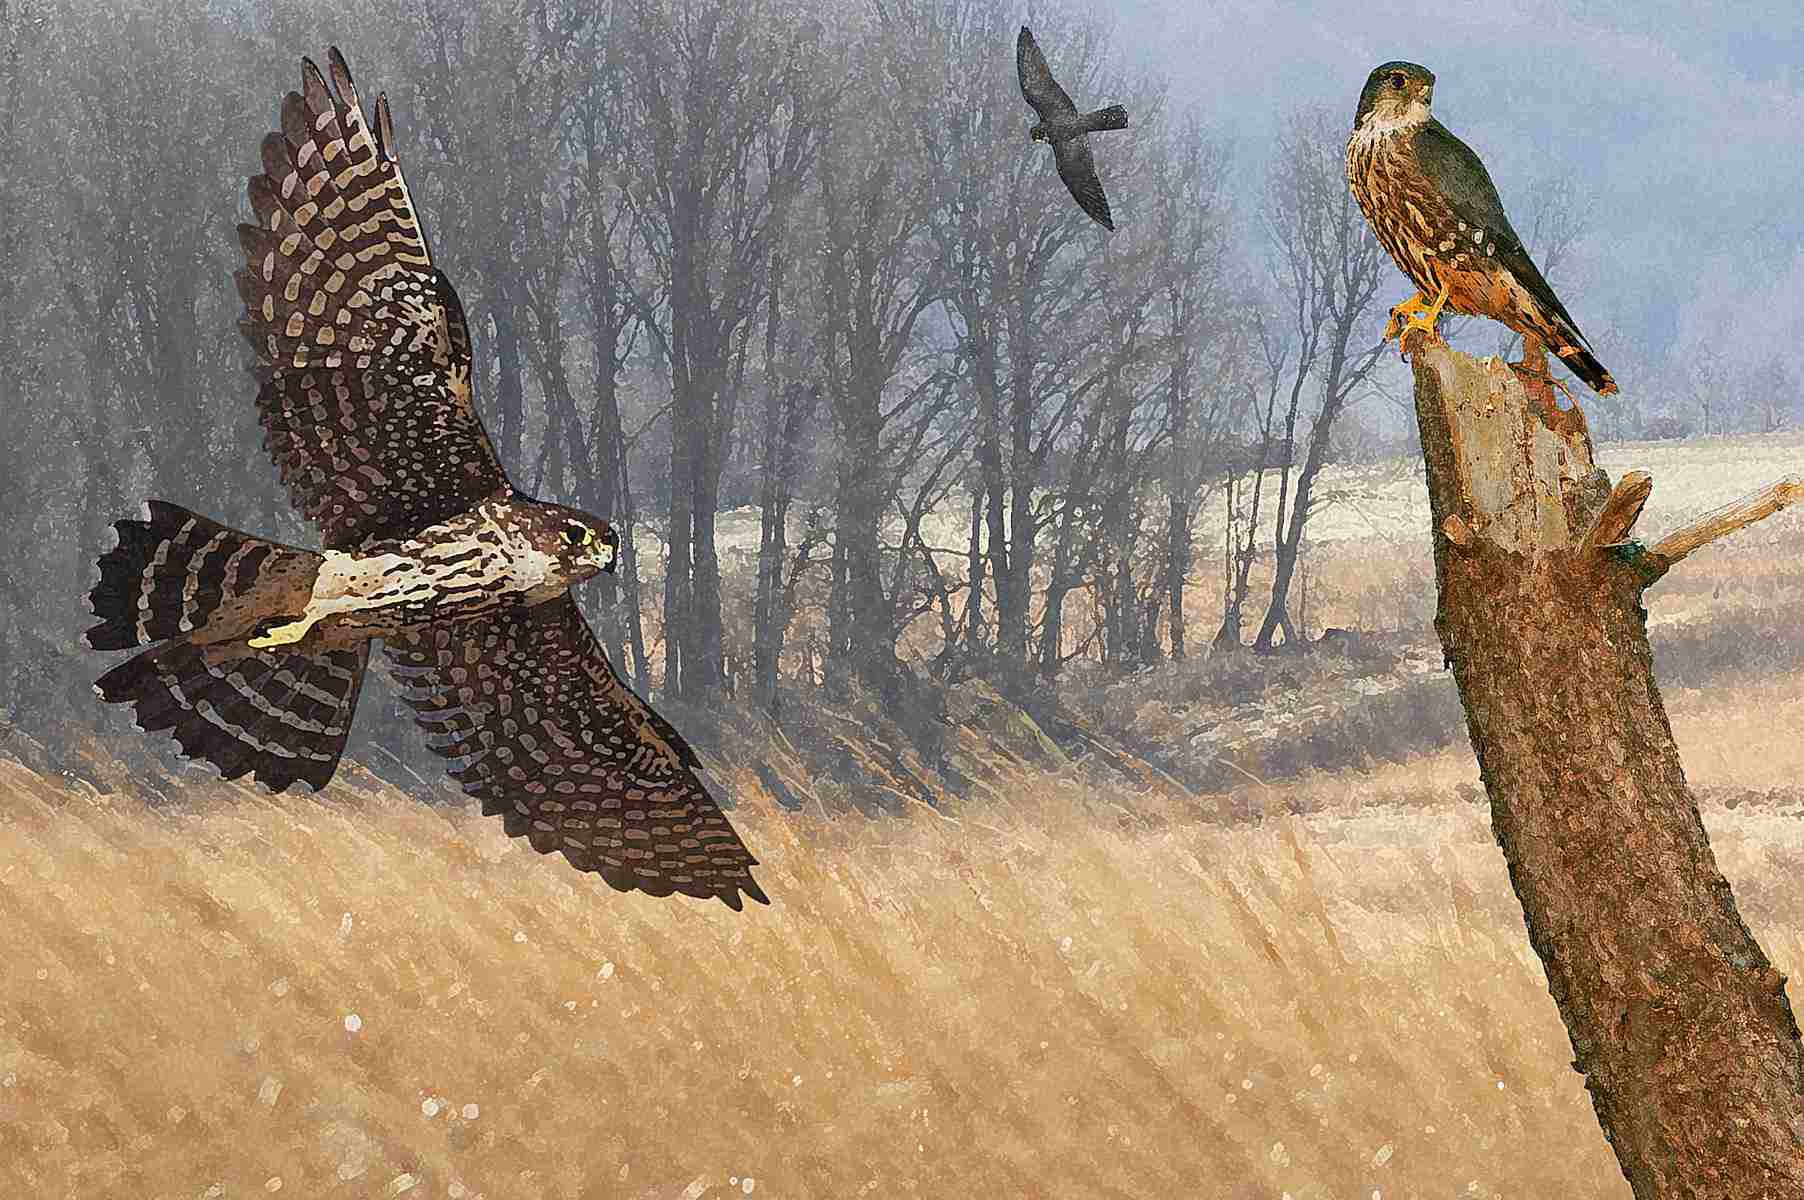 A montage of falcons